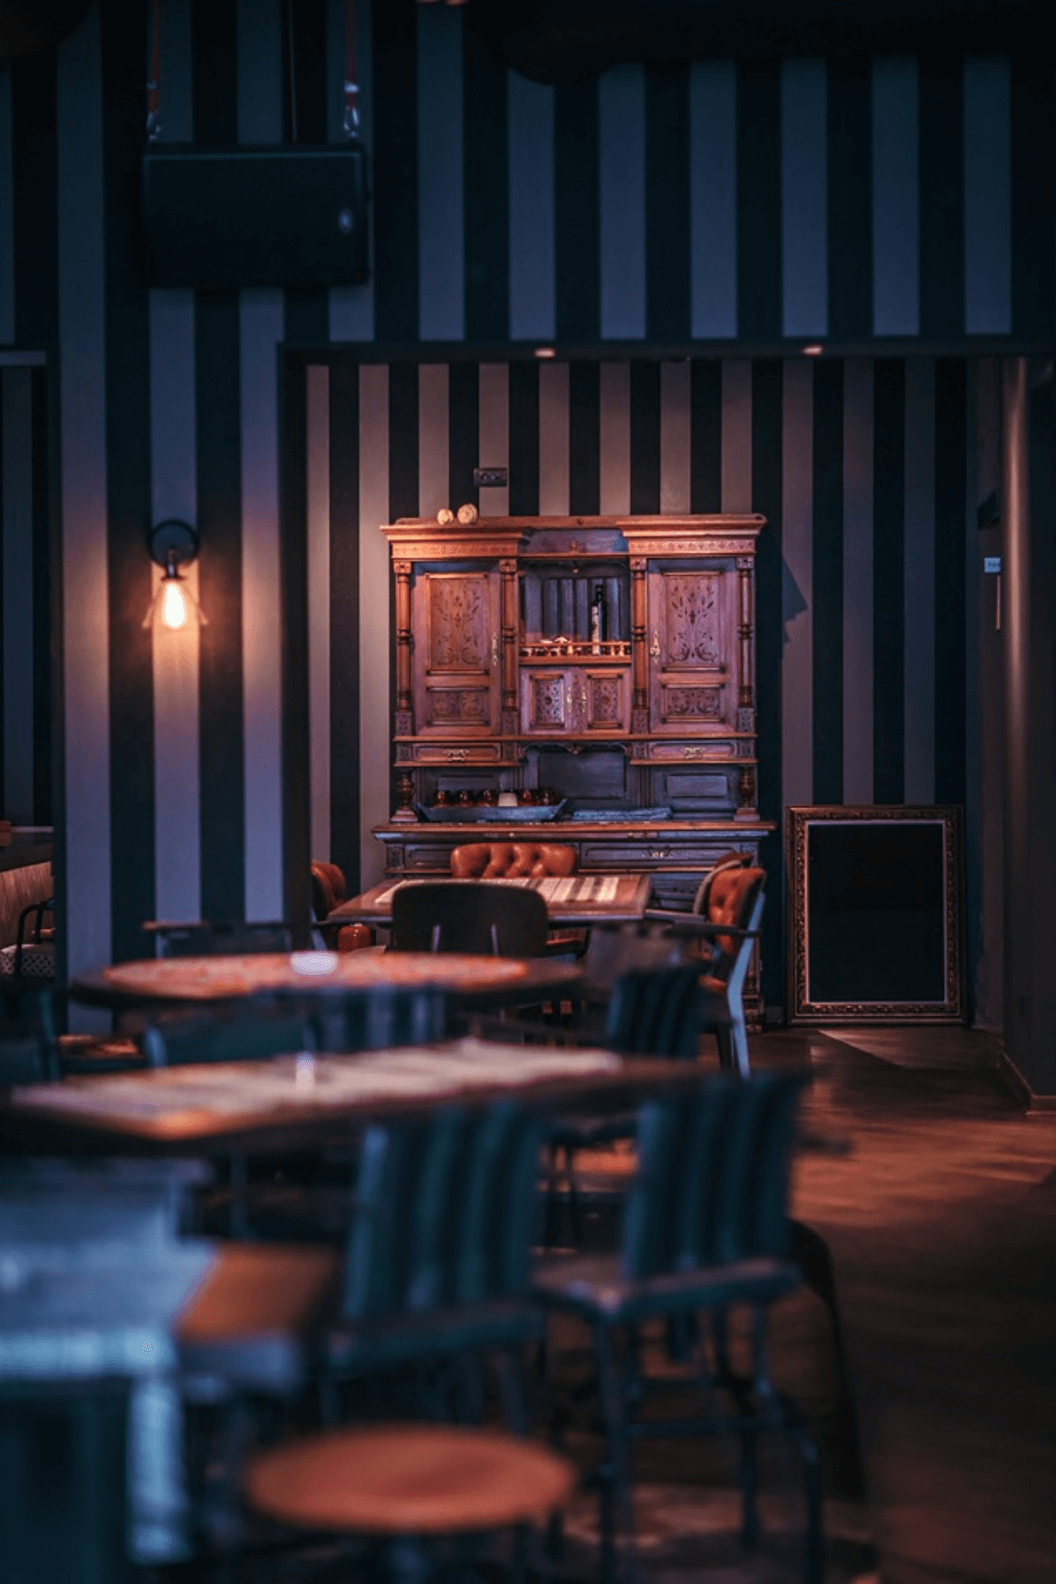 darker ambiance and mood in restaurant